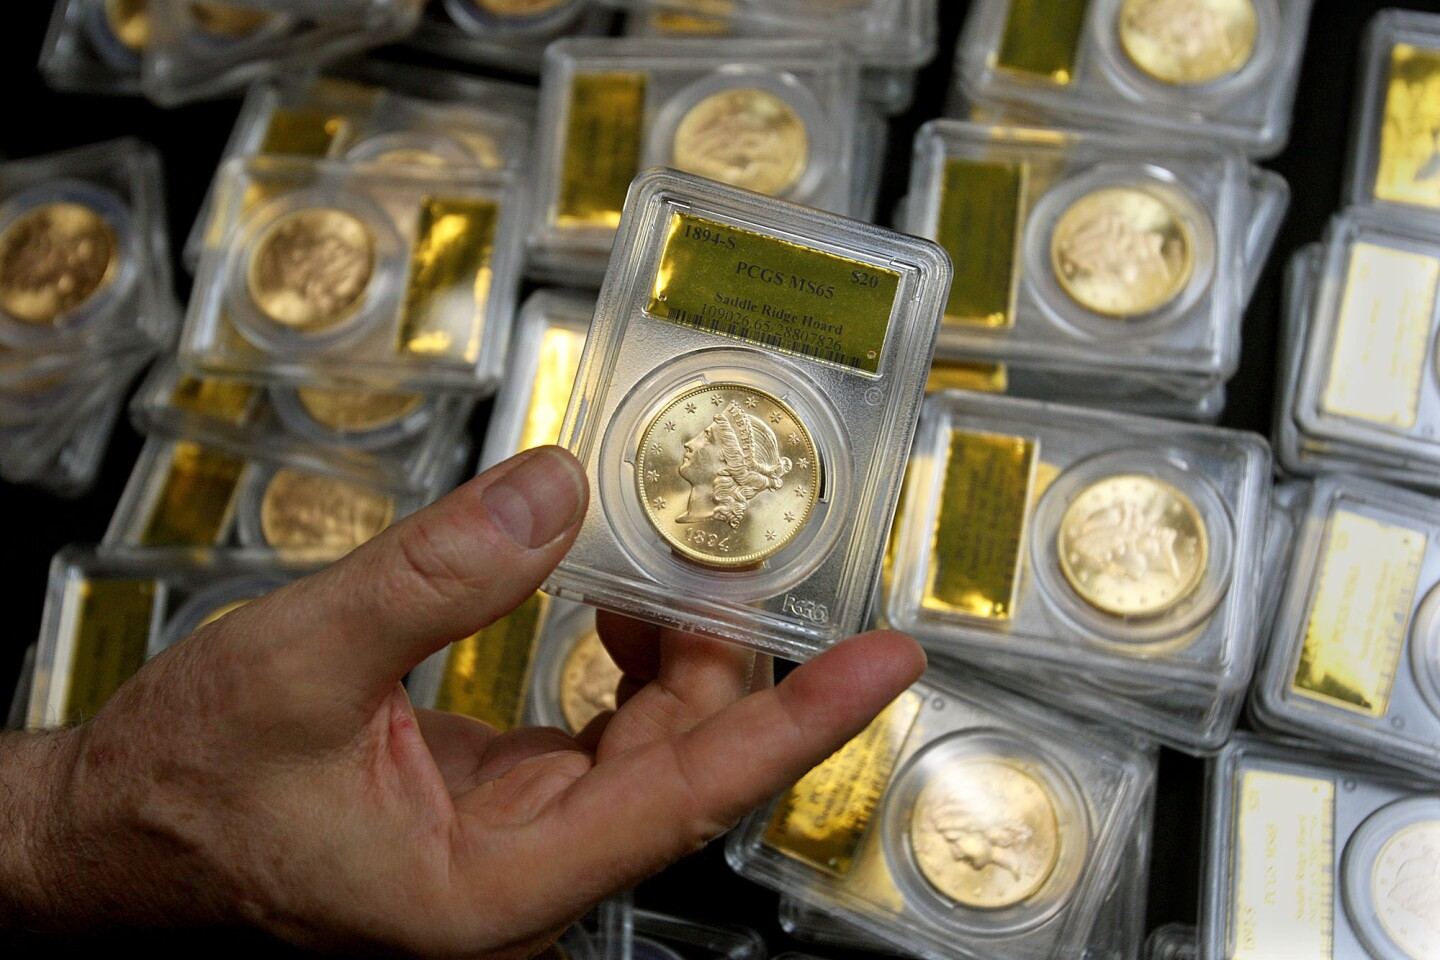 Some of 1,427 Gold Rush-era U.S. gold coins found buried in the Salinas Valley are displayed at Professional Coin Grading Service in Santa Ana.